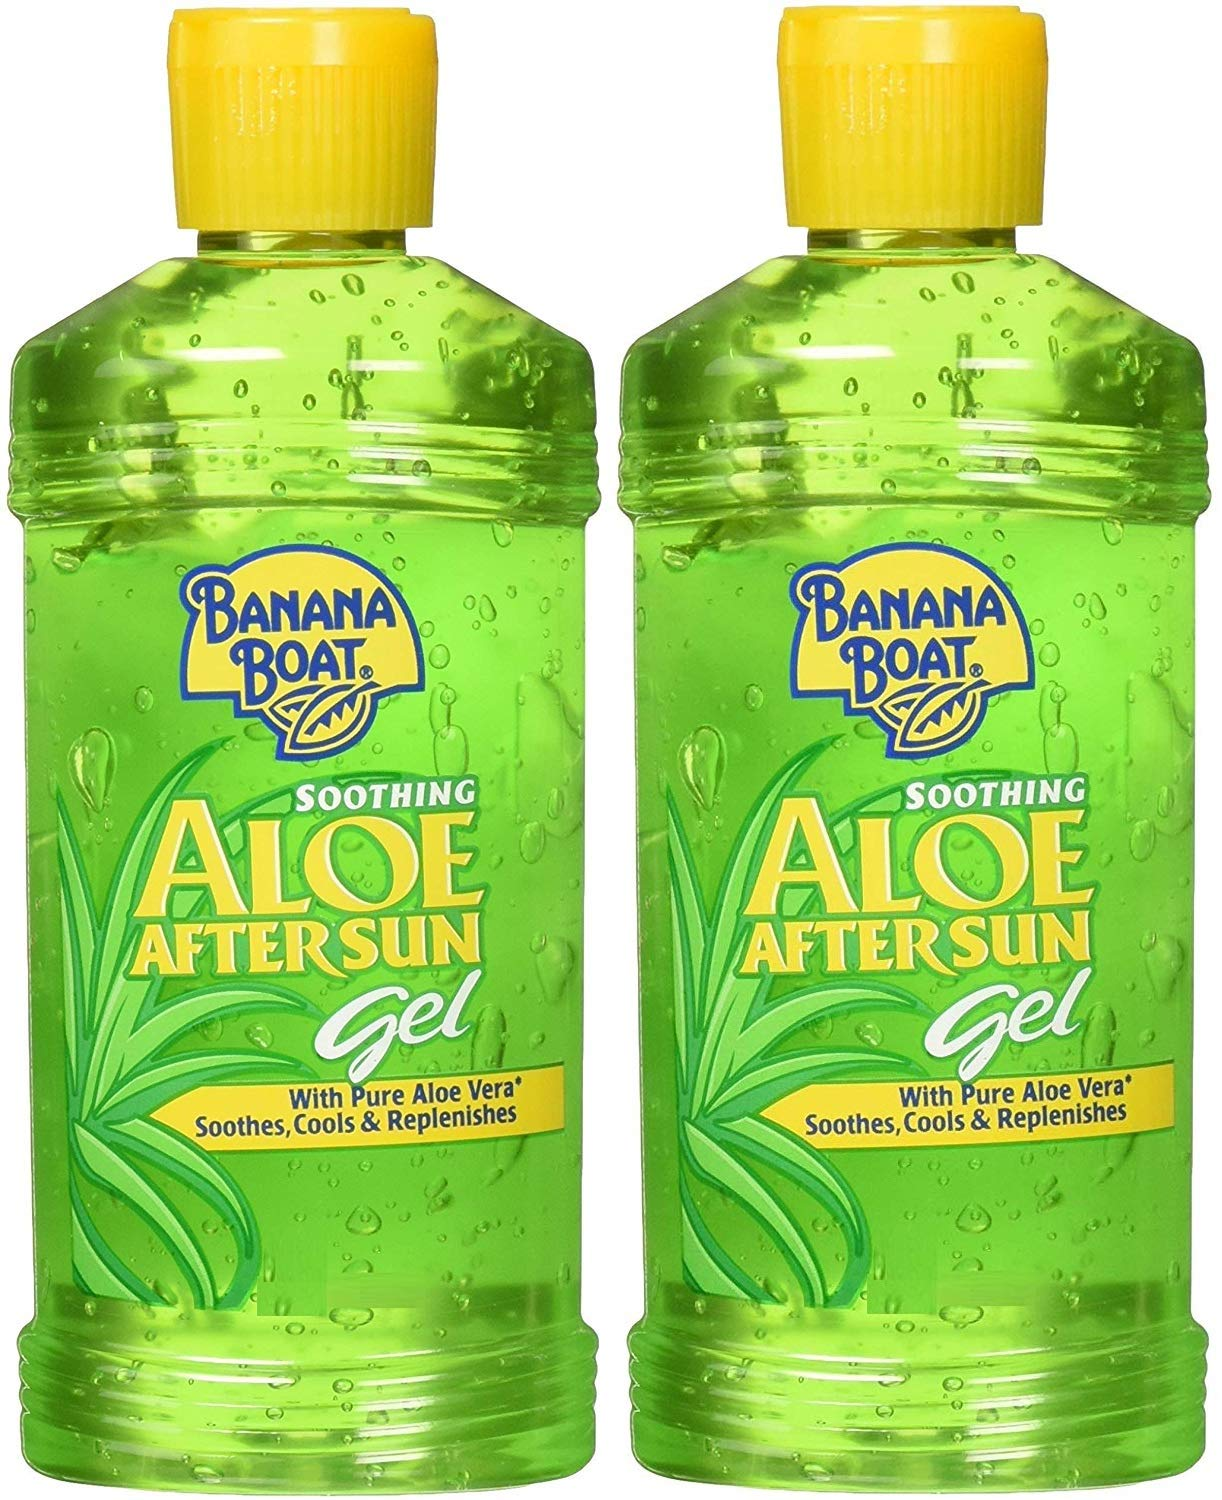 2x Banana Boat X74500b0 Aloe Vera Gel Buy Online In Cayman Islands Banana Boat Products In Cayman Islands See Prices Reviews And Free Delivery Over Ci 60 Desertcart